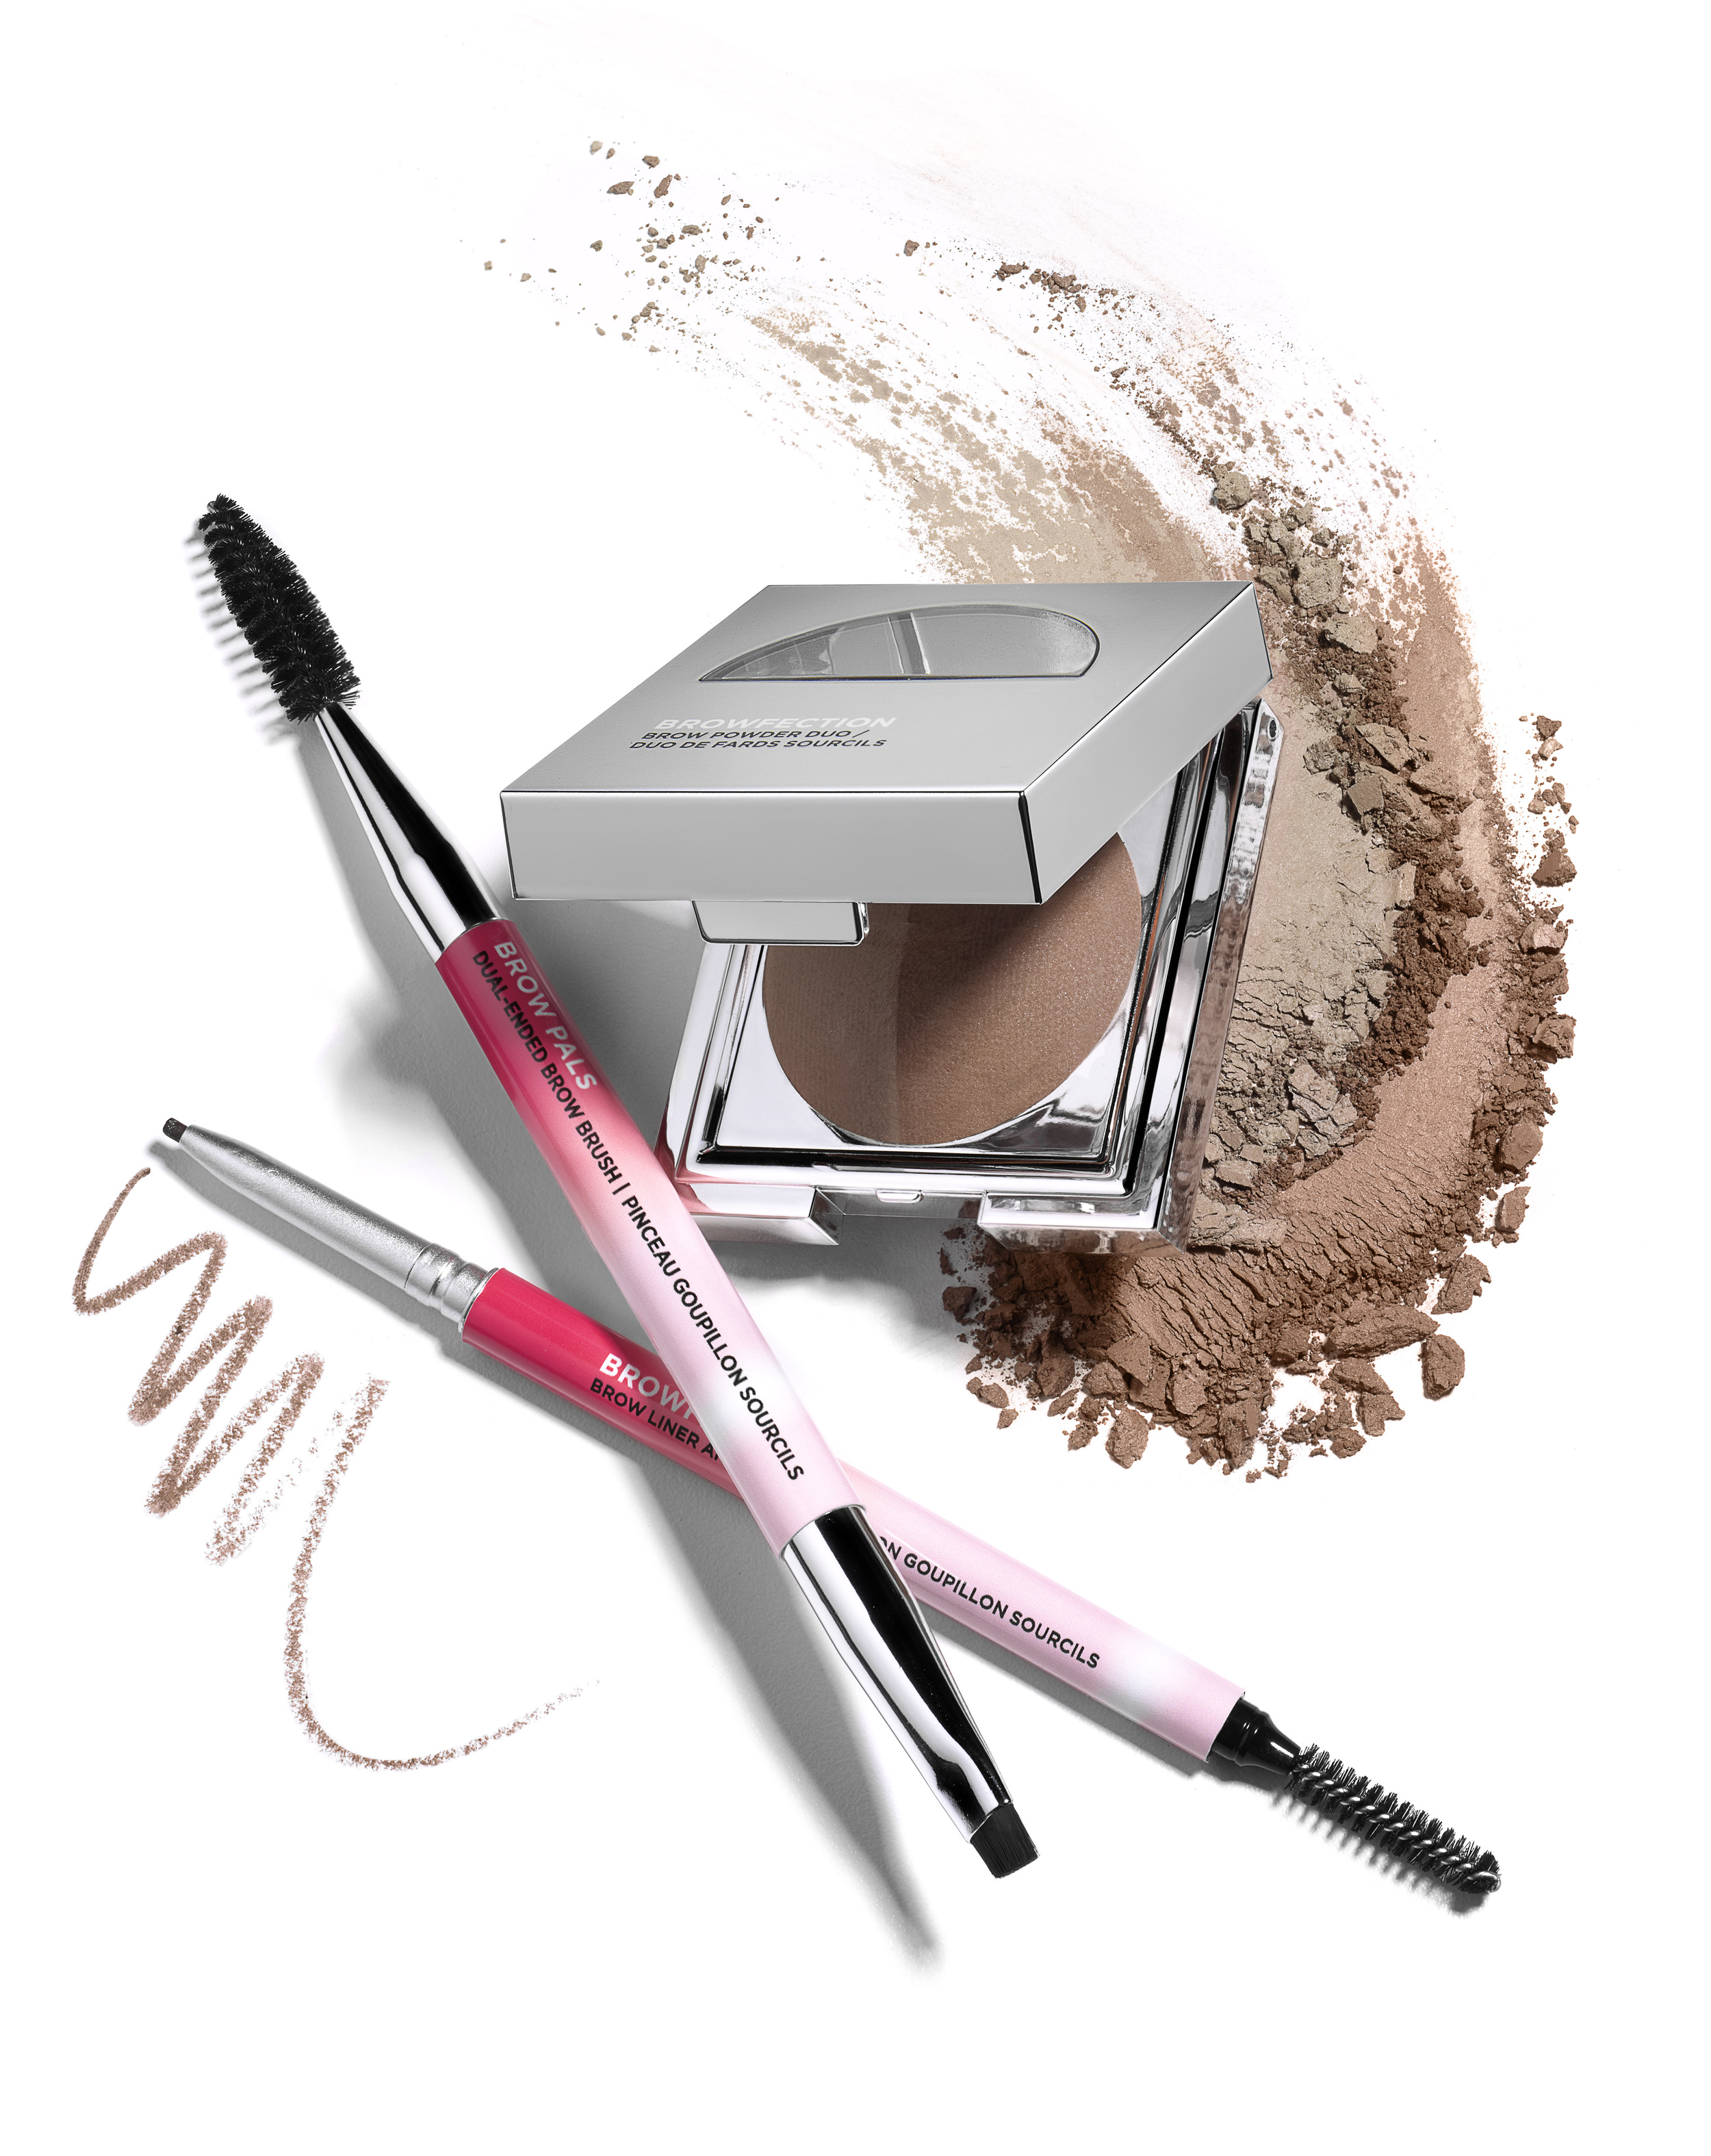 EWC_2016_Brow-Swatch-3Products_RGB.jpg